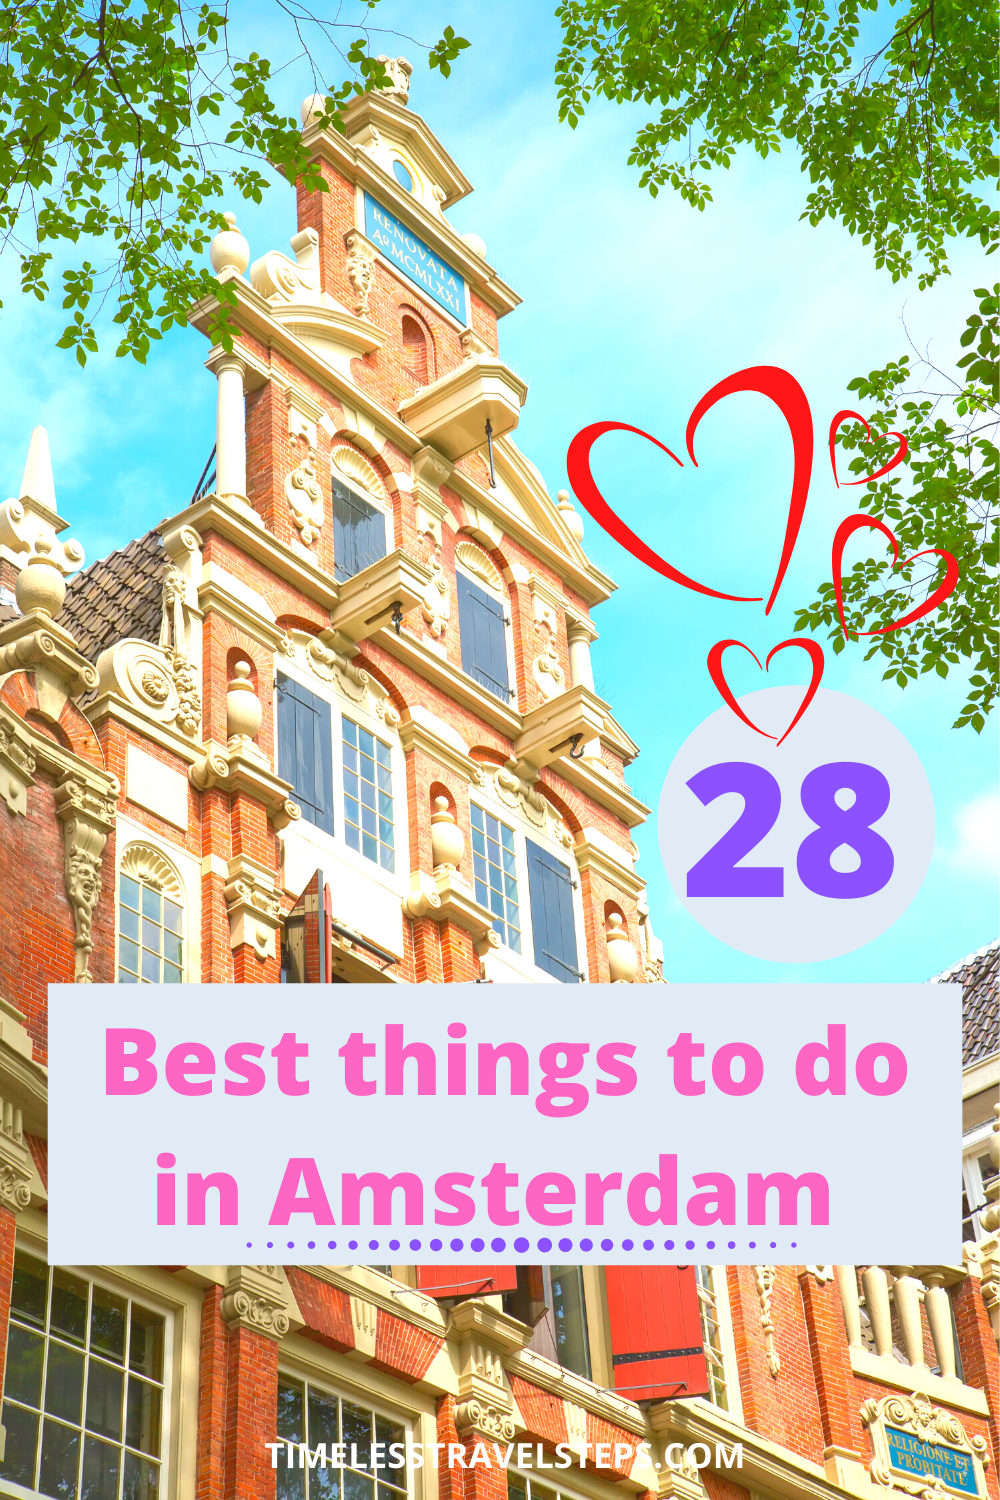 Amsterdam is a city that will have you with no time to be bored - whether its a weekend or a few days, this is your ultimate guide on unmissable 28 best things to do in Amsterdam for timeless memories of this historic and elegant city | Epic things to do in Amsterdam | Best things to do in Amsterdam | Visit Amsterdam | Amsterdam on a weekend | 3 days in Amsterdam | What to do in Amsterdam | Amazing things to do in Amsterdam | Fun things to do in Amsterdam | Quirky things to do in Amsterdam. via @GGeorgina_timelesstravelsteps/